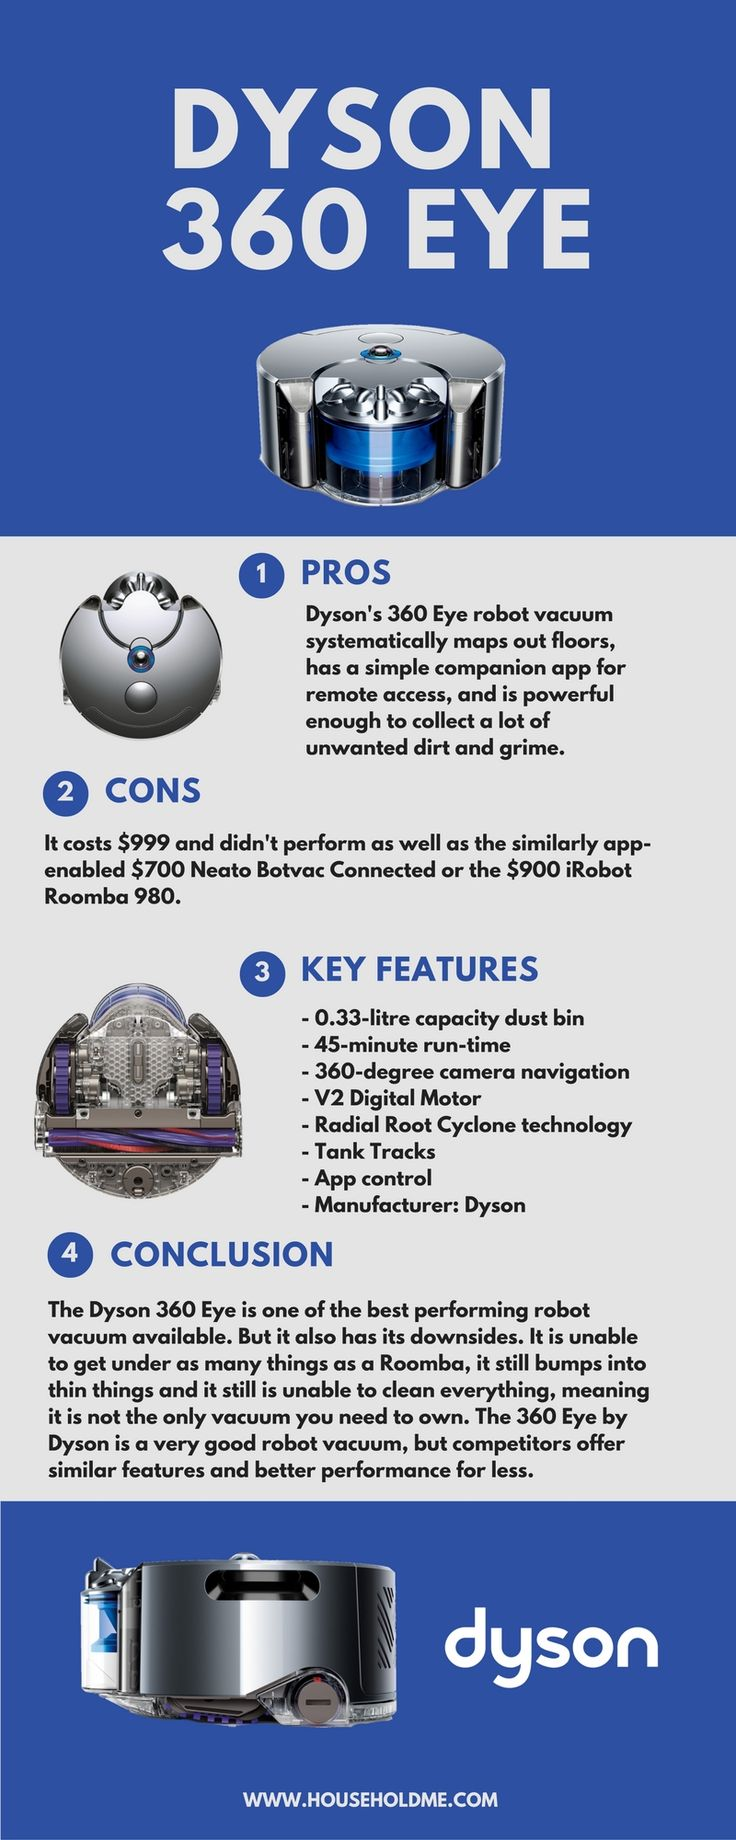 dyson 360 eye infographic on sale now amazon httpamznto - Dyson Vacuum Sale